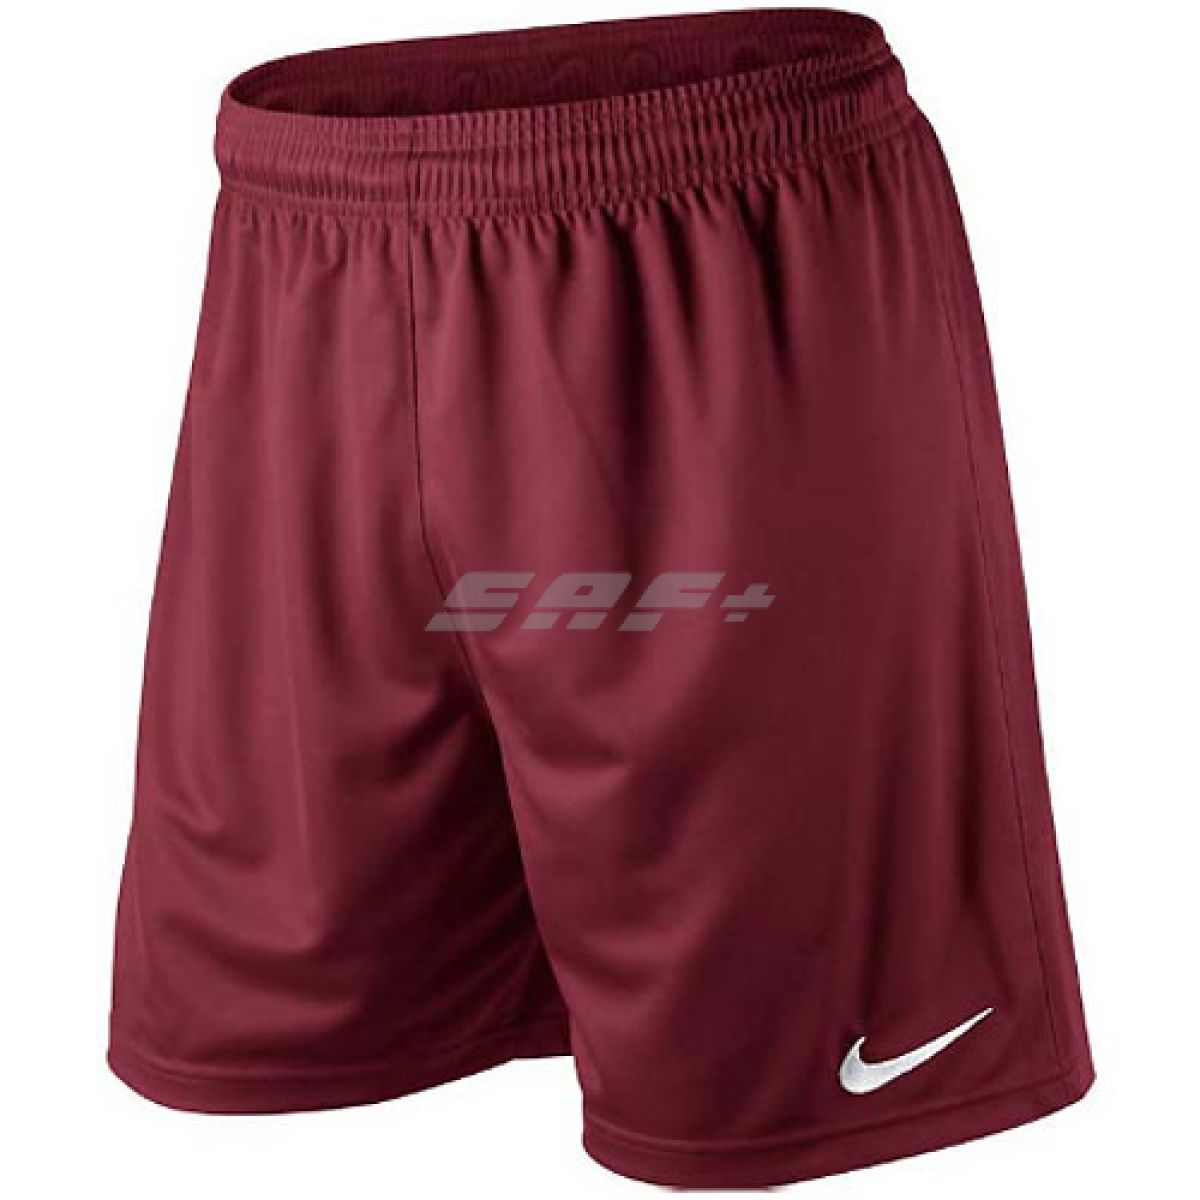 ТРУСЫ ИГРОВЫЕ NIKE PARK KNIT SHORT NB SR